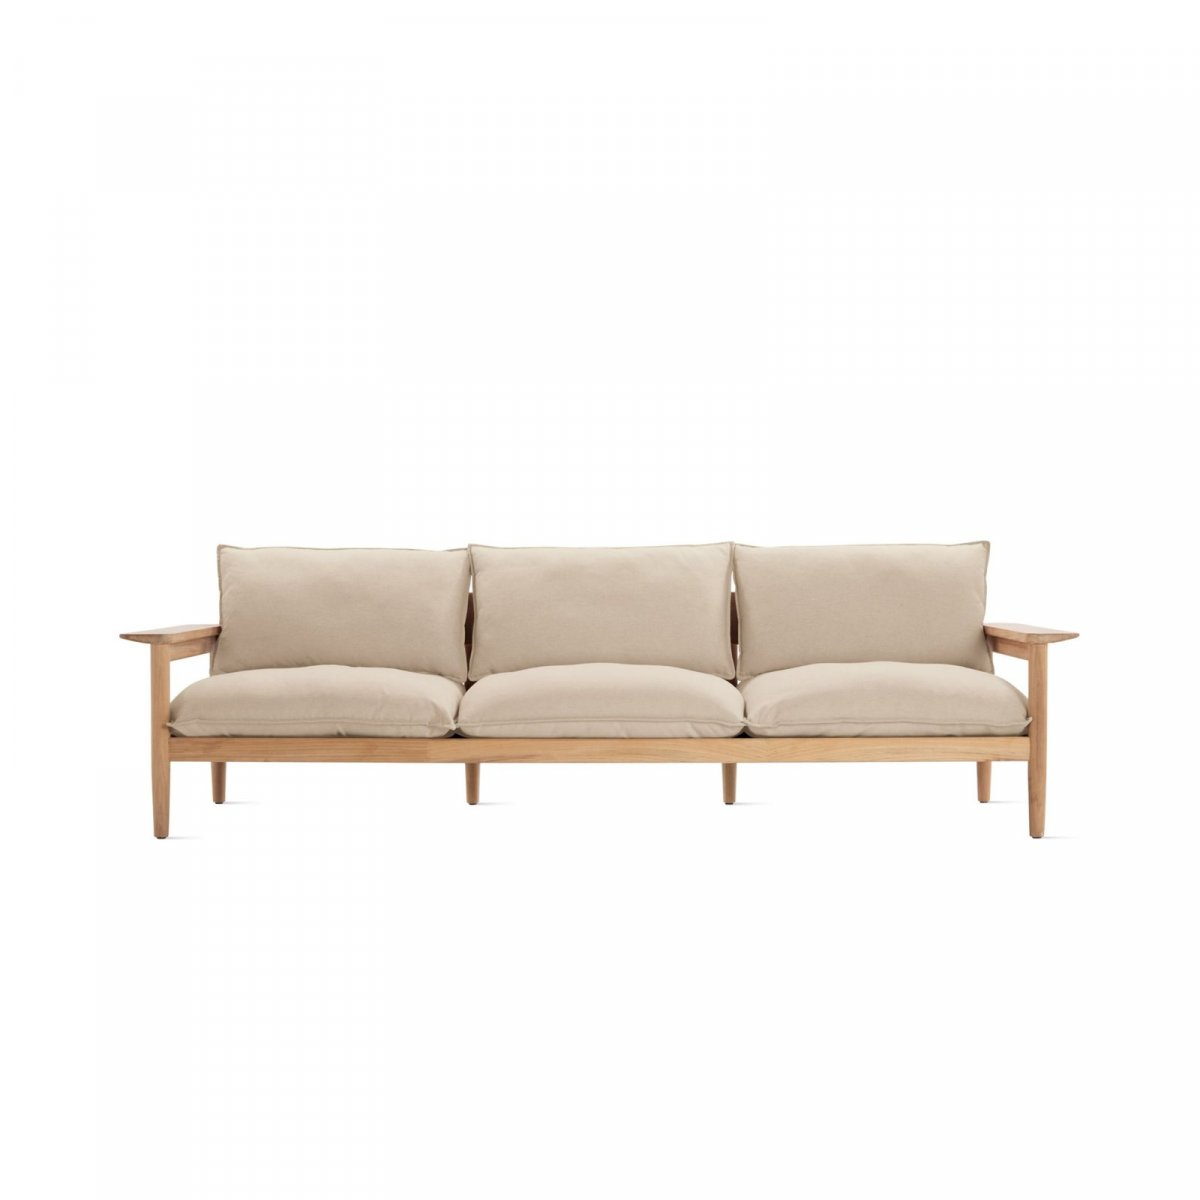 Terassi Three-Seater Sofa, papyrus.